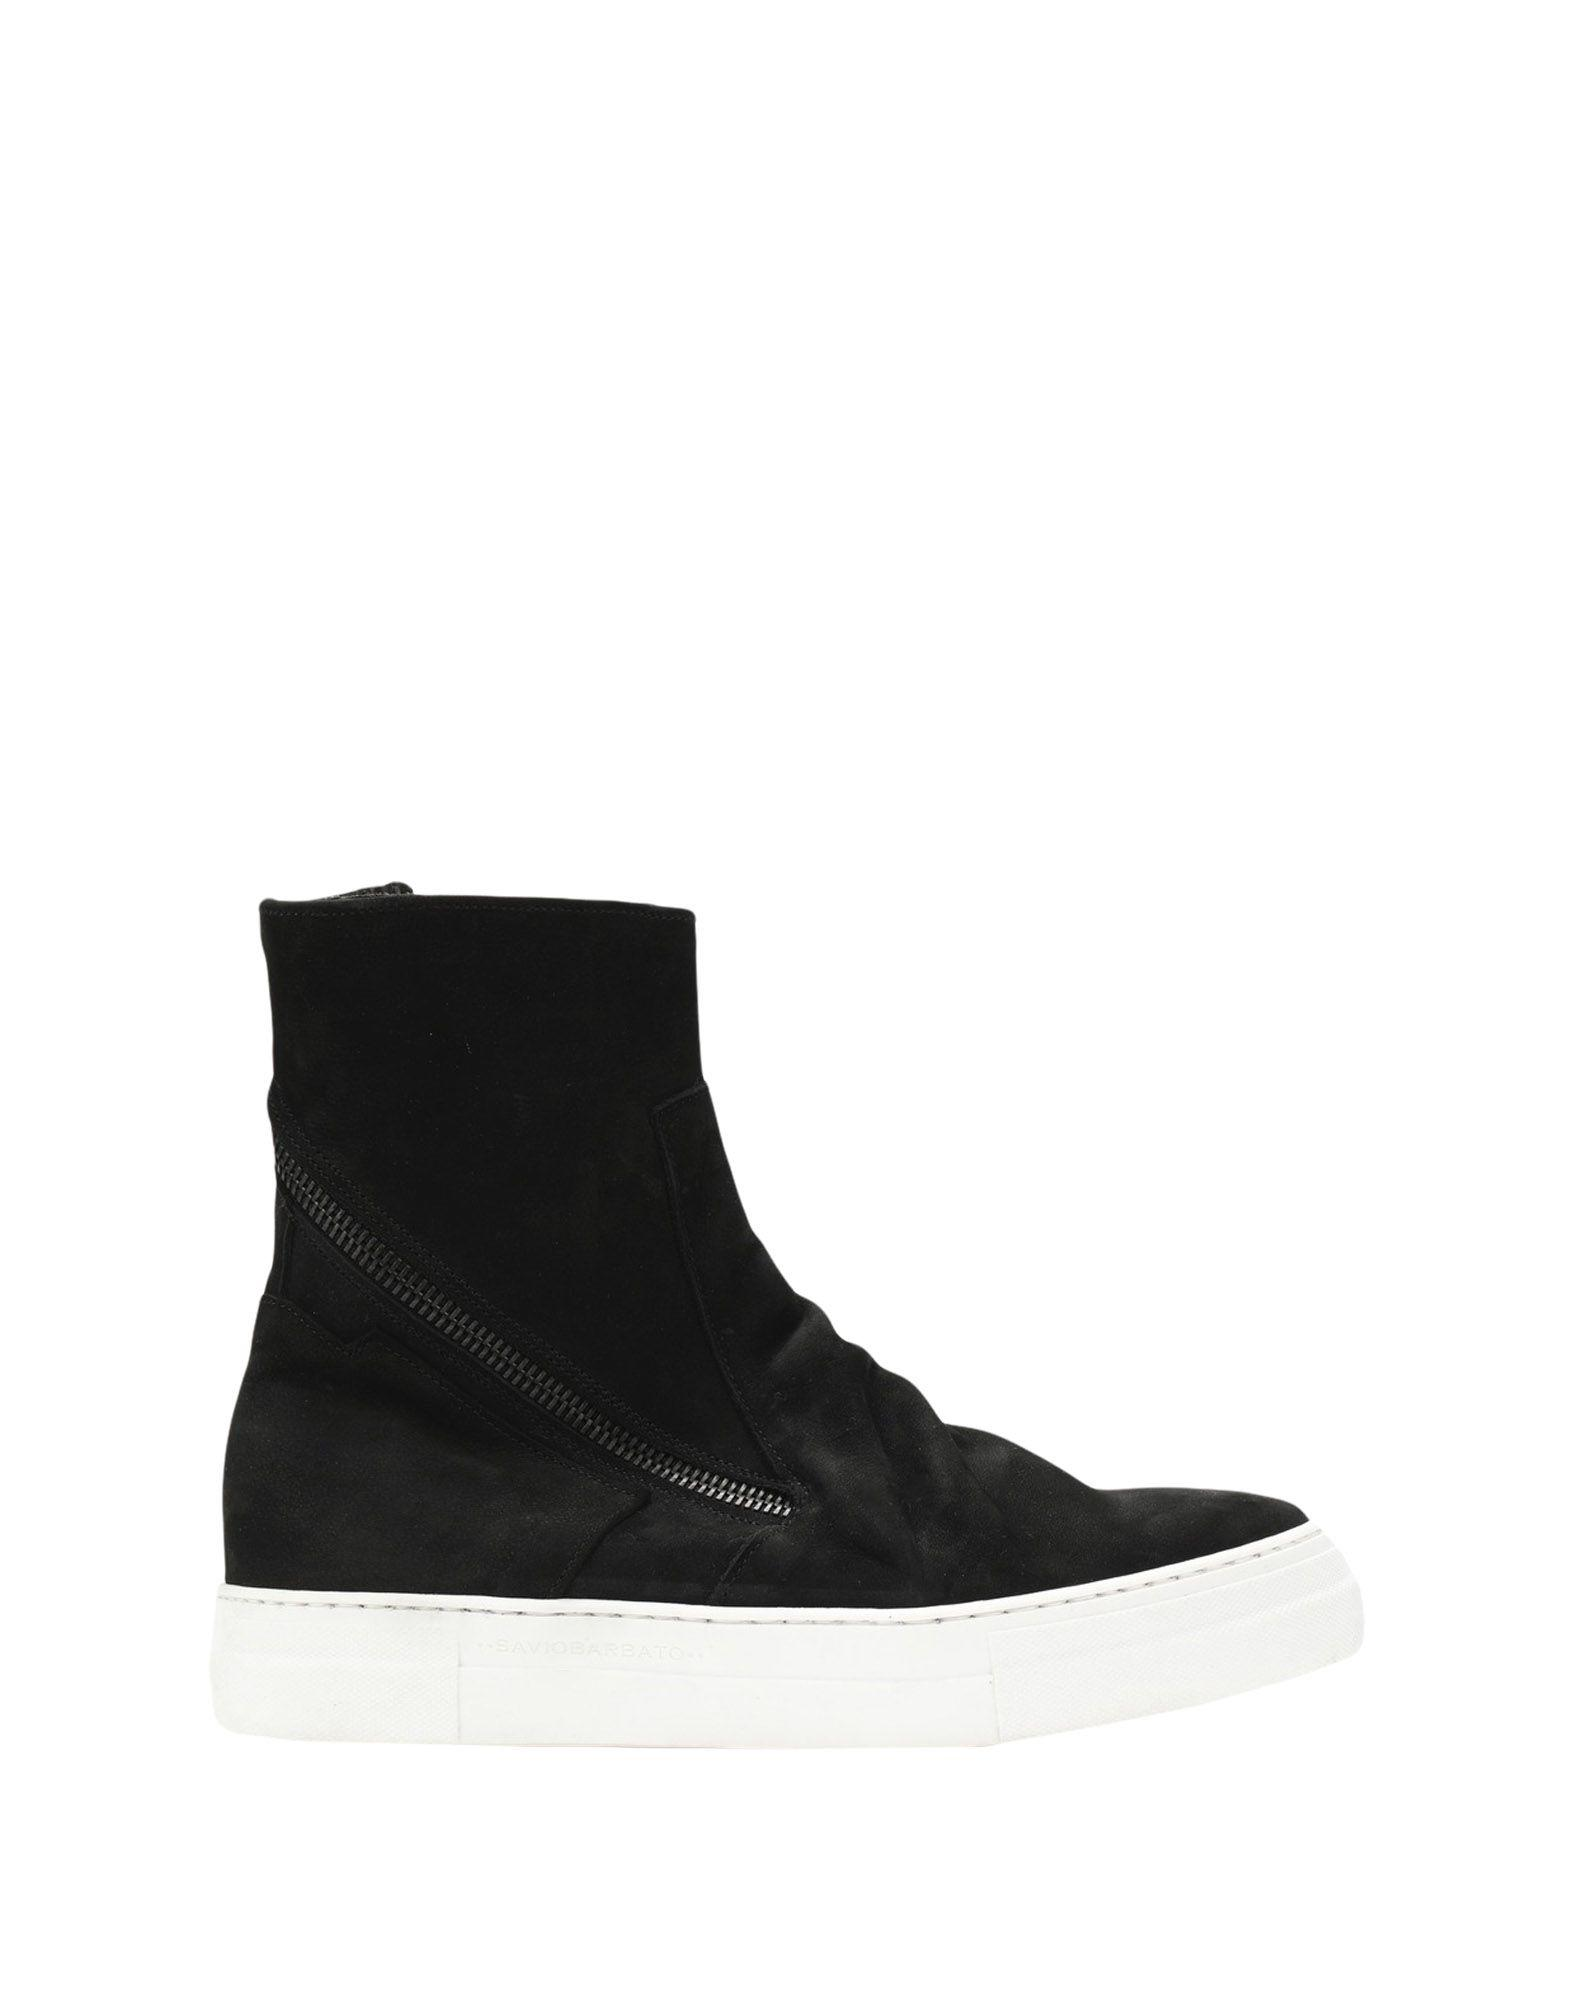 Savio Barbato Sneakers In Black